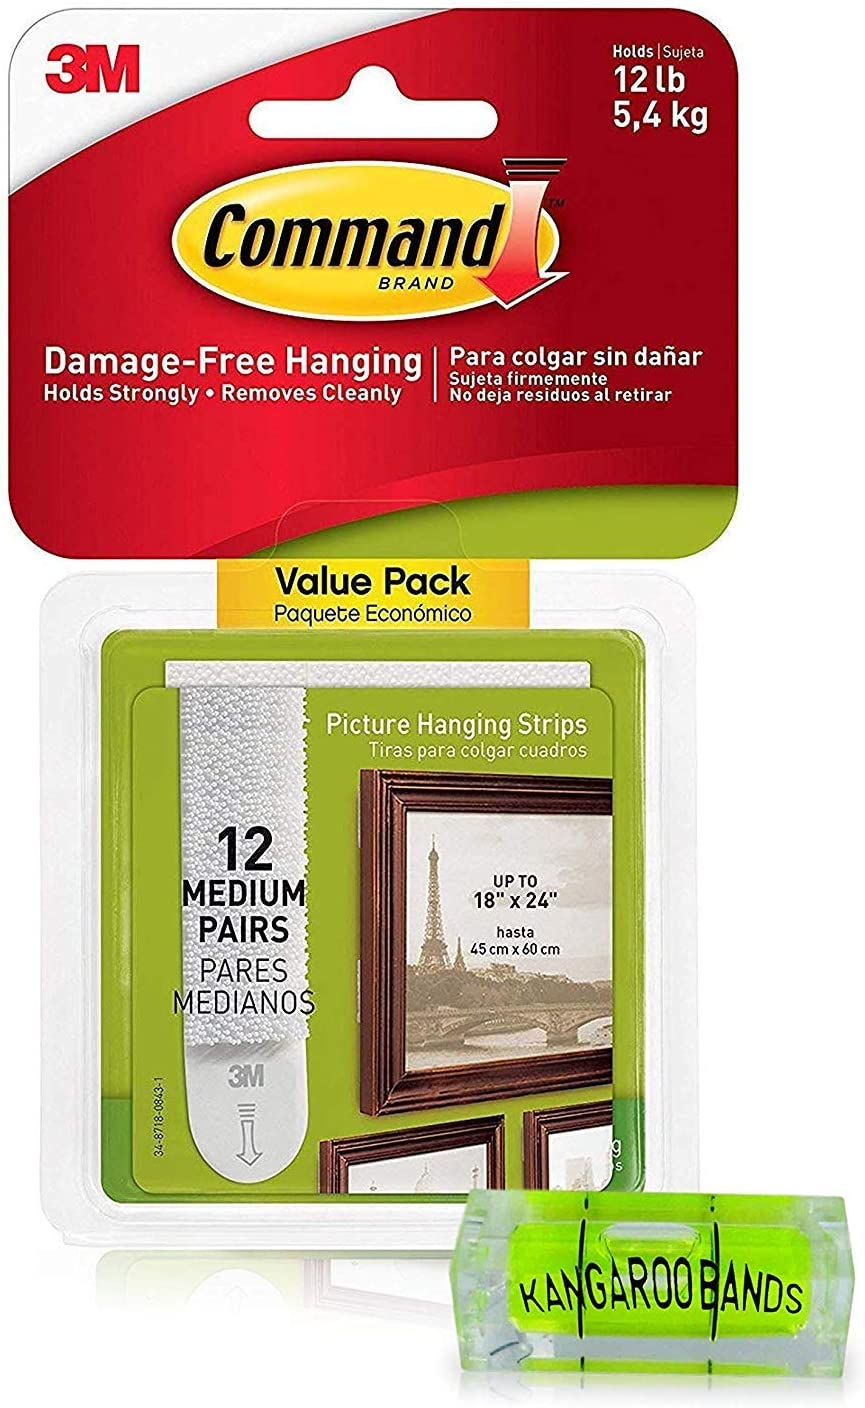 Command Picture Hanging Kit 3m Strips Max 55% OFF Level 12-P Recommendation Damage-Free